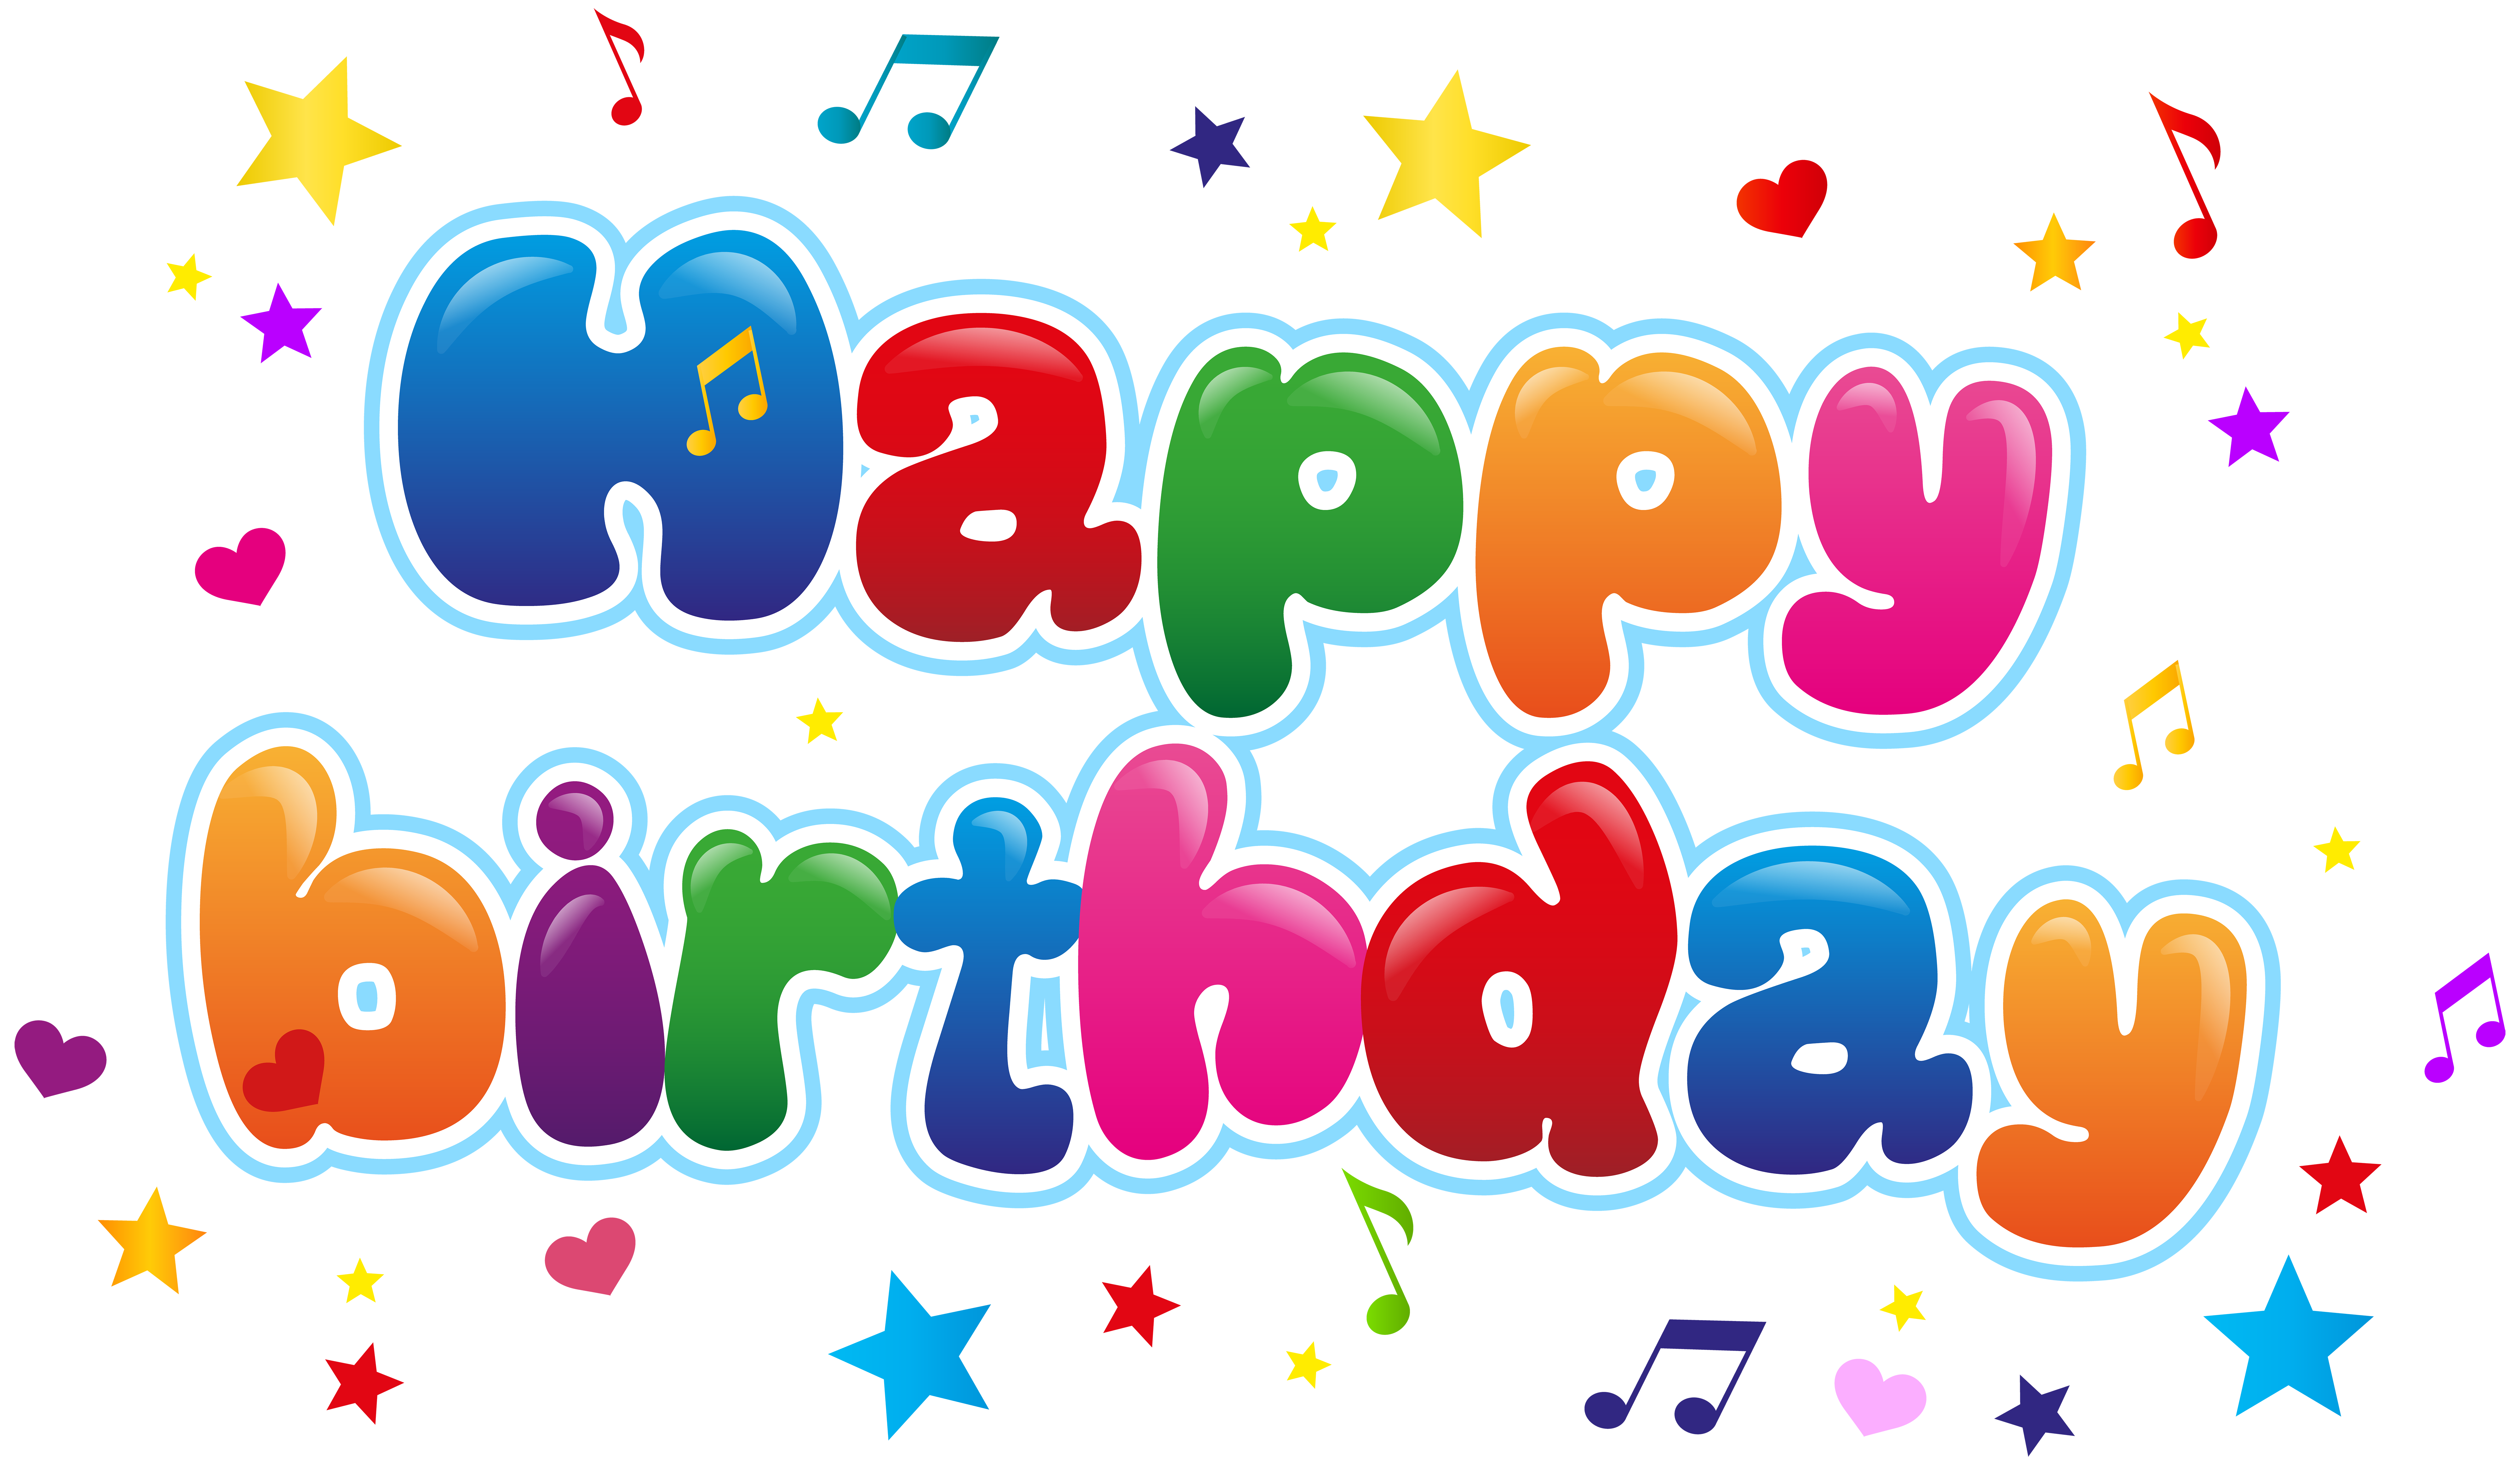 Happy birthday png images. Cute clip art image